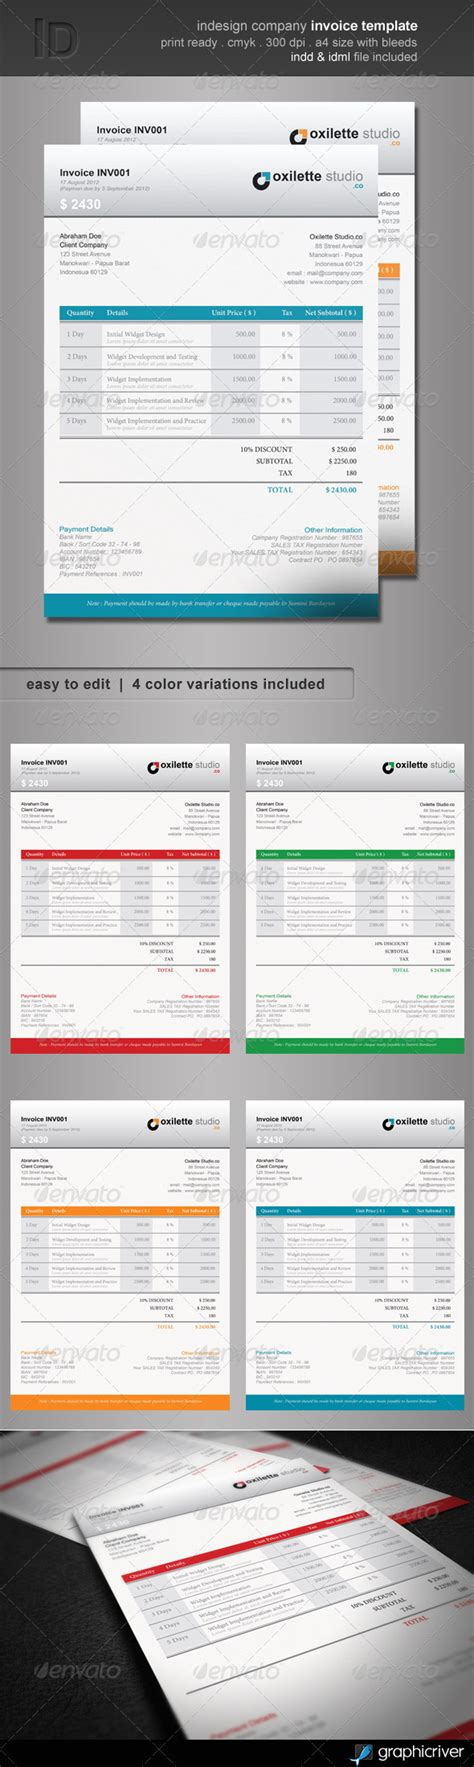 Indesign Company Invoice Template Graphicriver Graphic Design Invoice Template Indesign